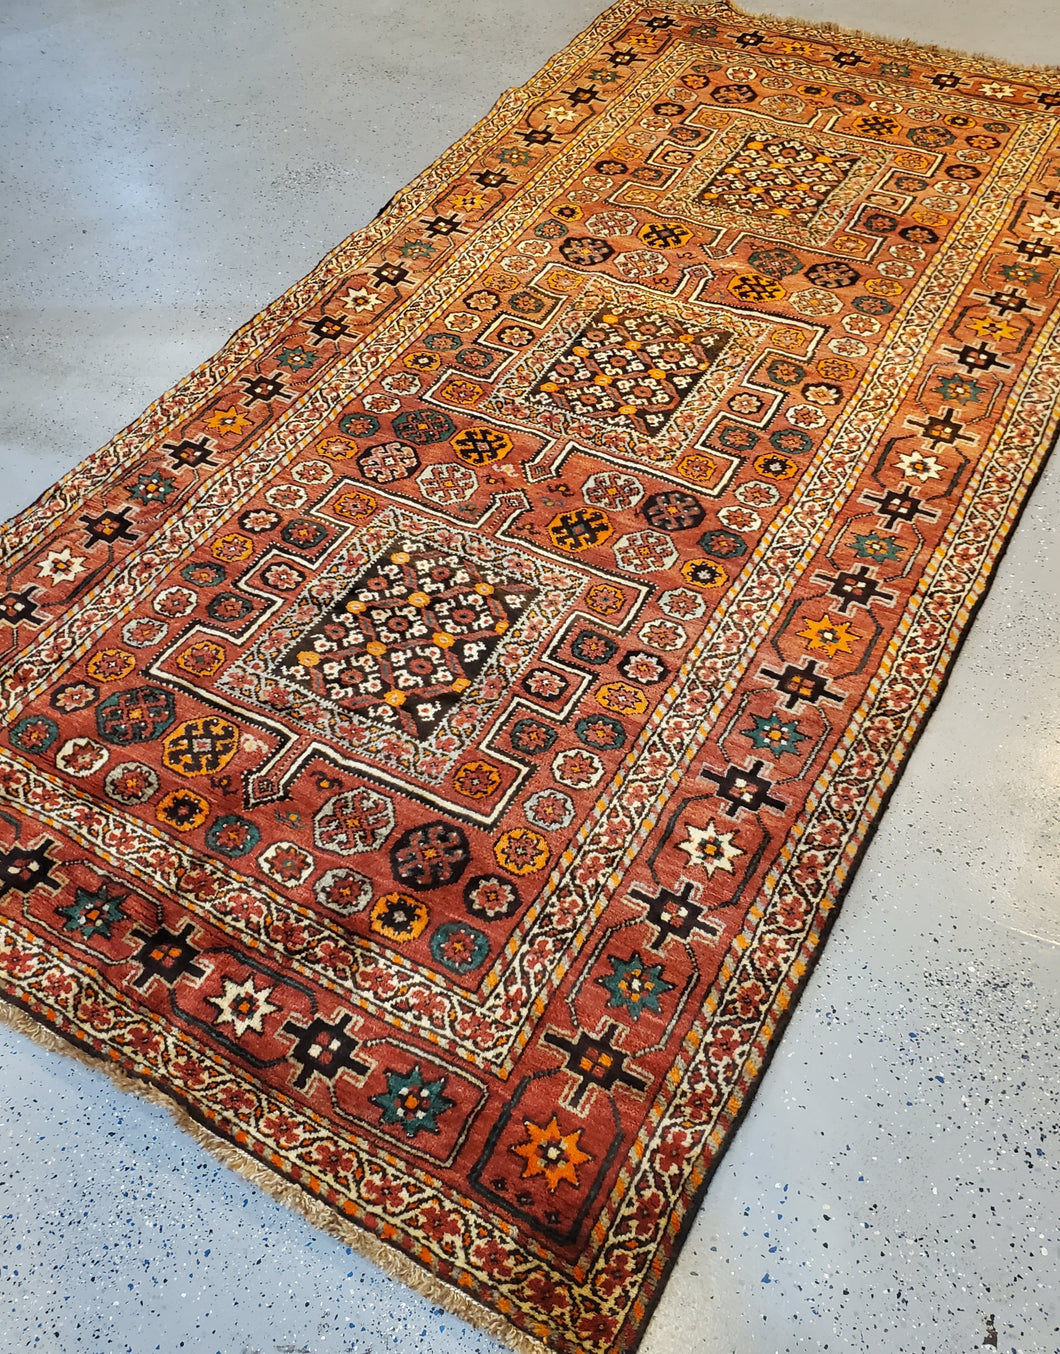 This is a top left side angled view of the Qashqai HandKnotted Area Rug